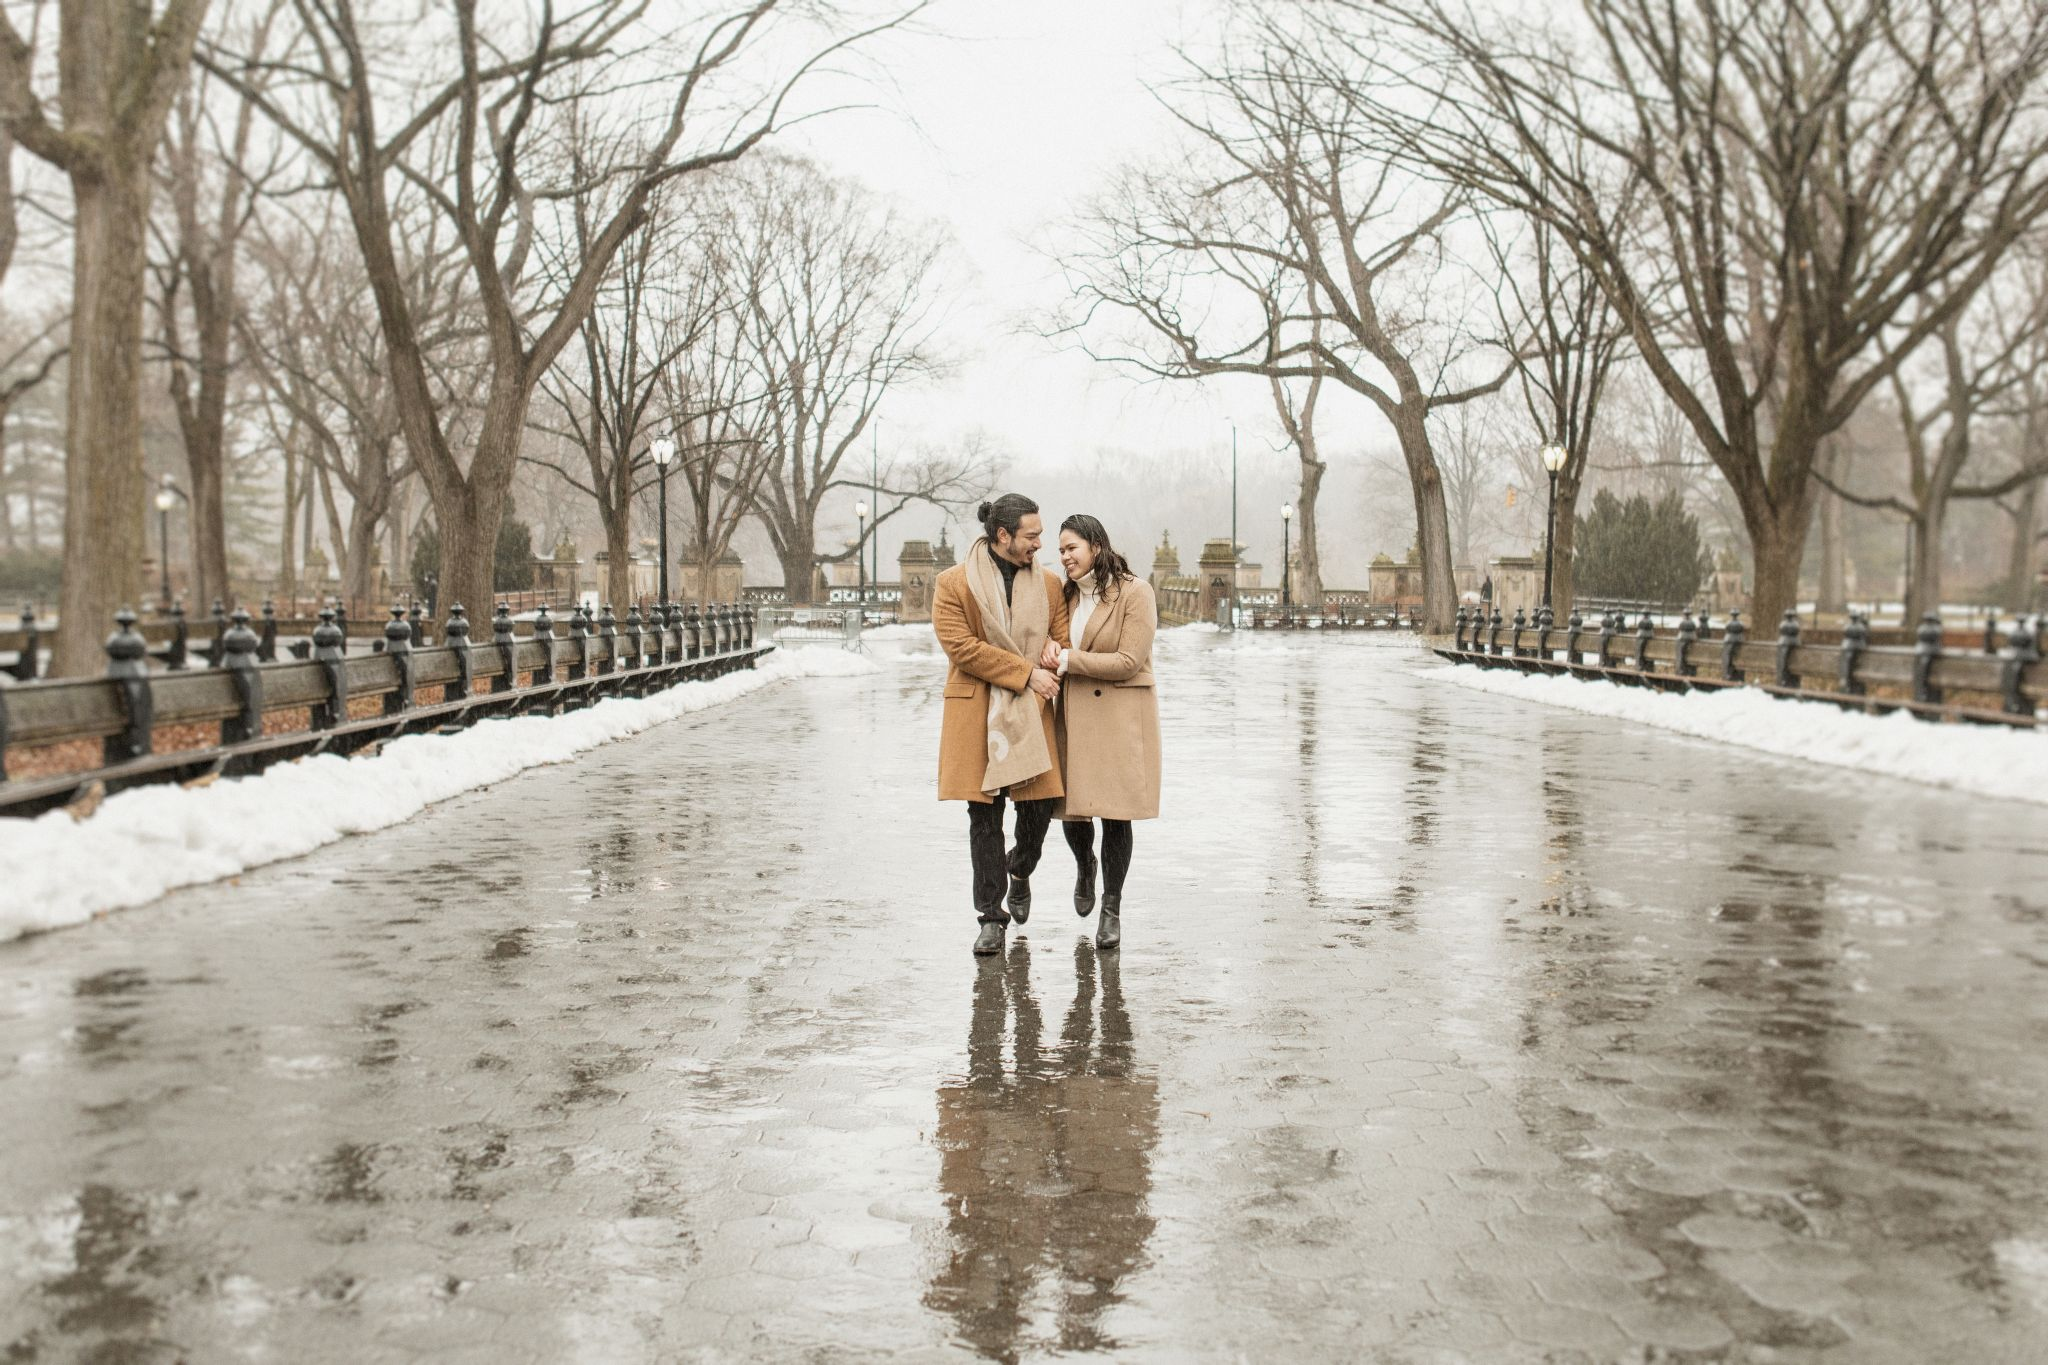 Romantic Central Park Proposal at the Lake